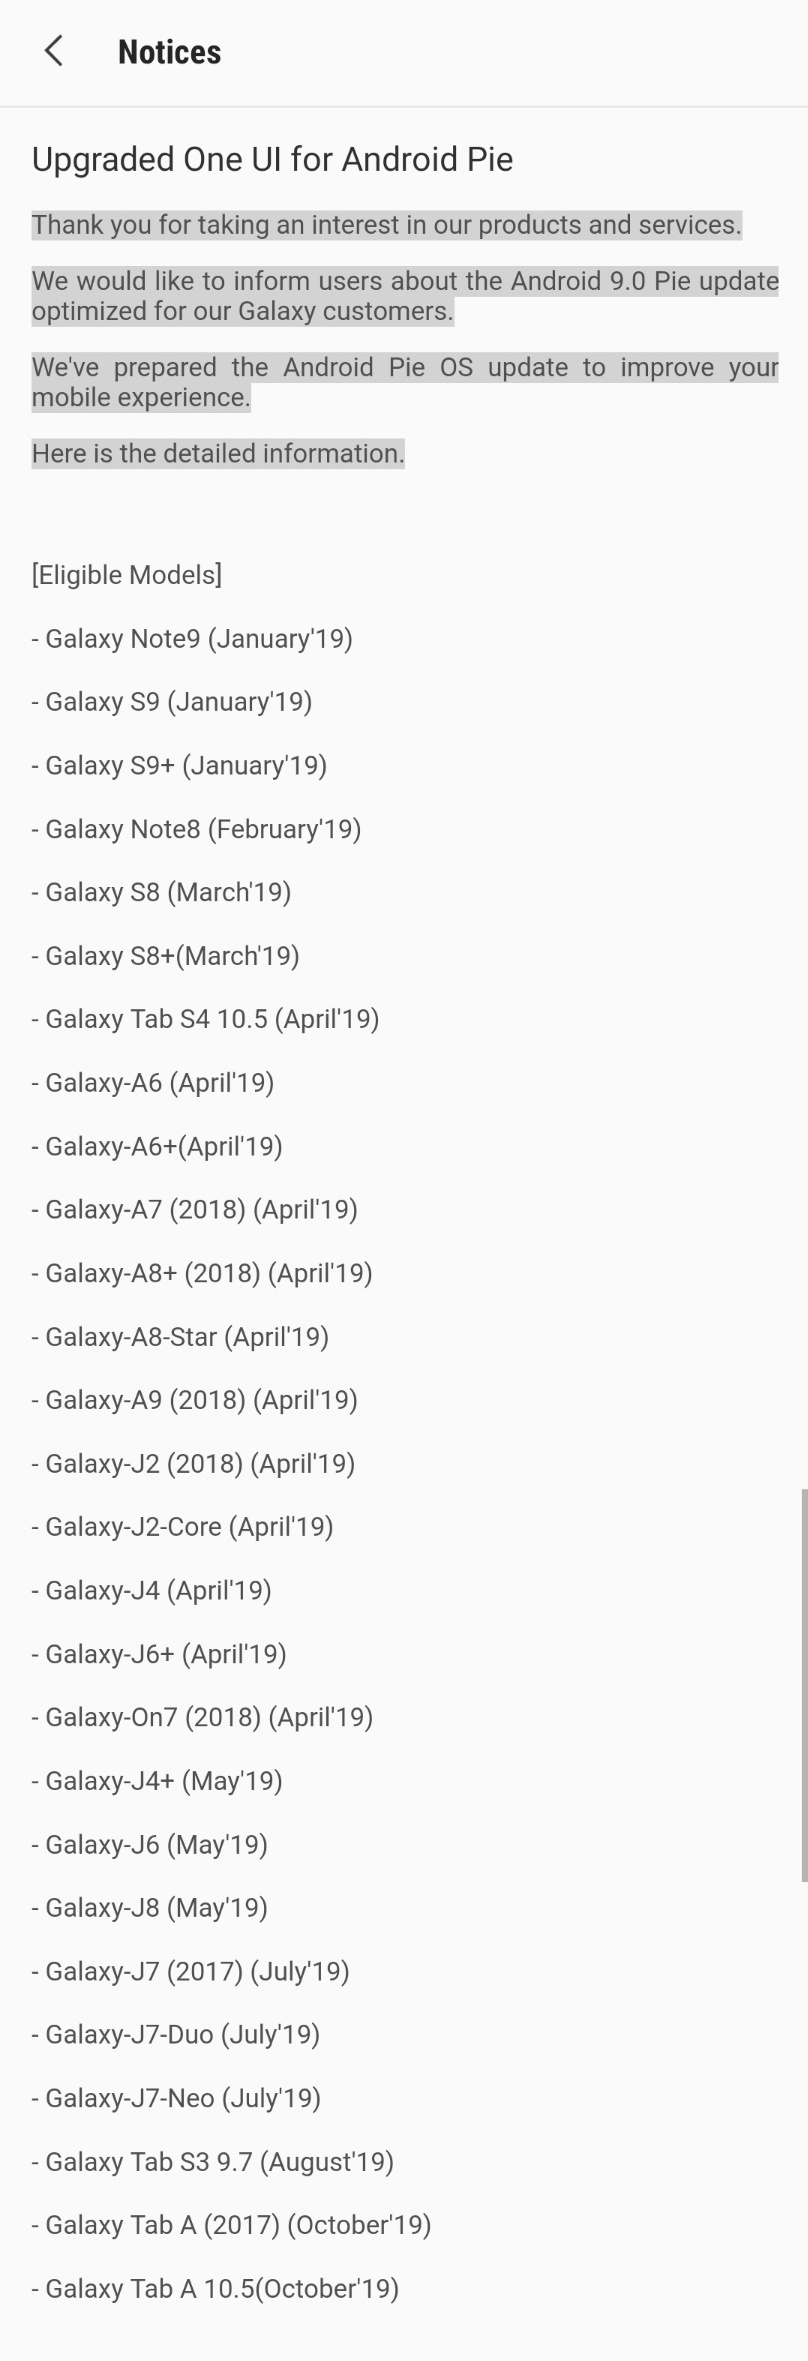 Will the Samsung Galaxy S7/S7 Edge get the new One UI update